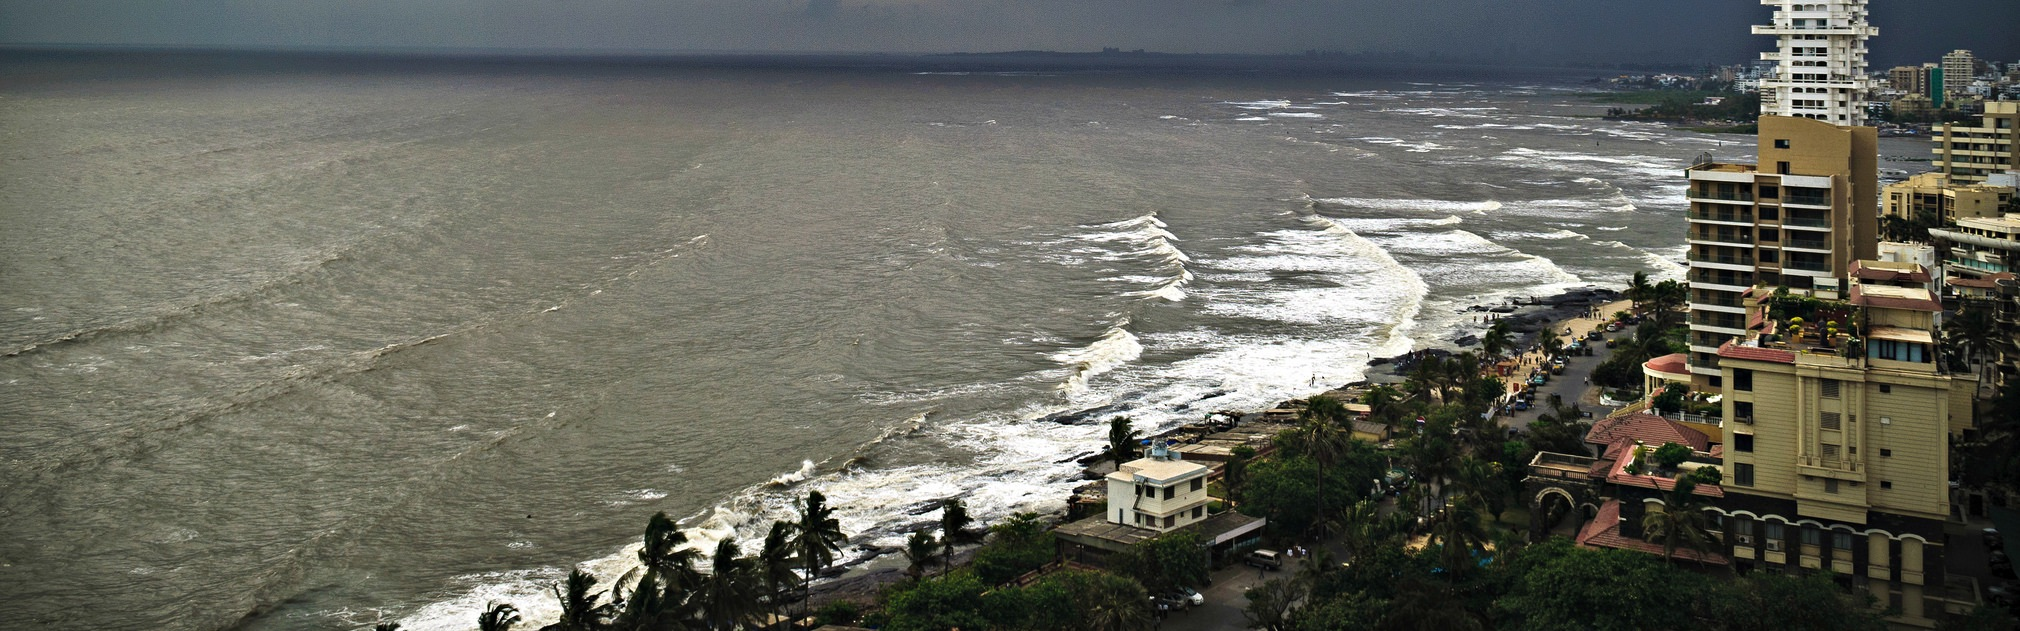 There Is Still No Real Coastal 'Planning' in India